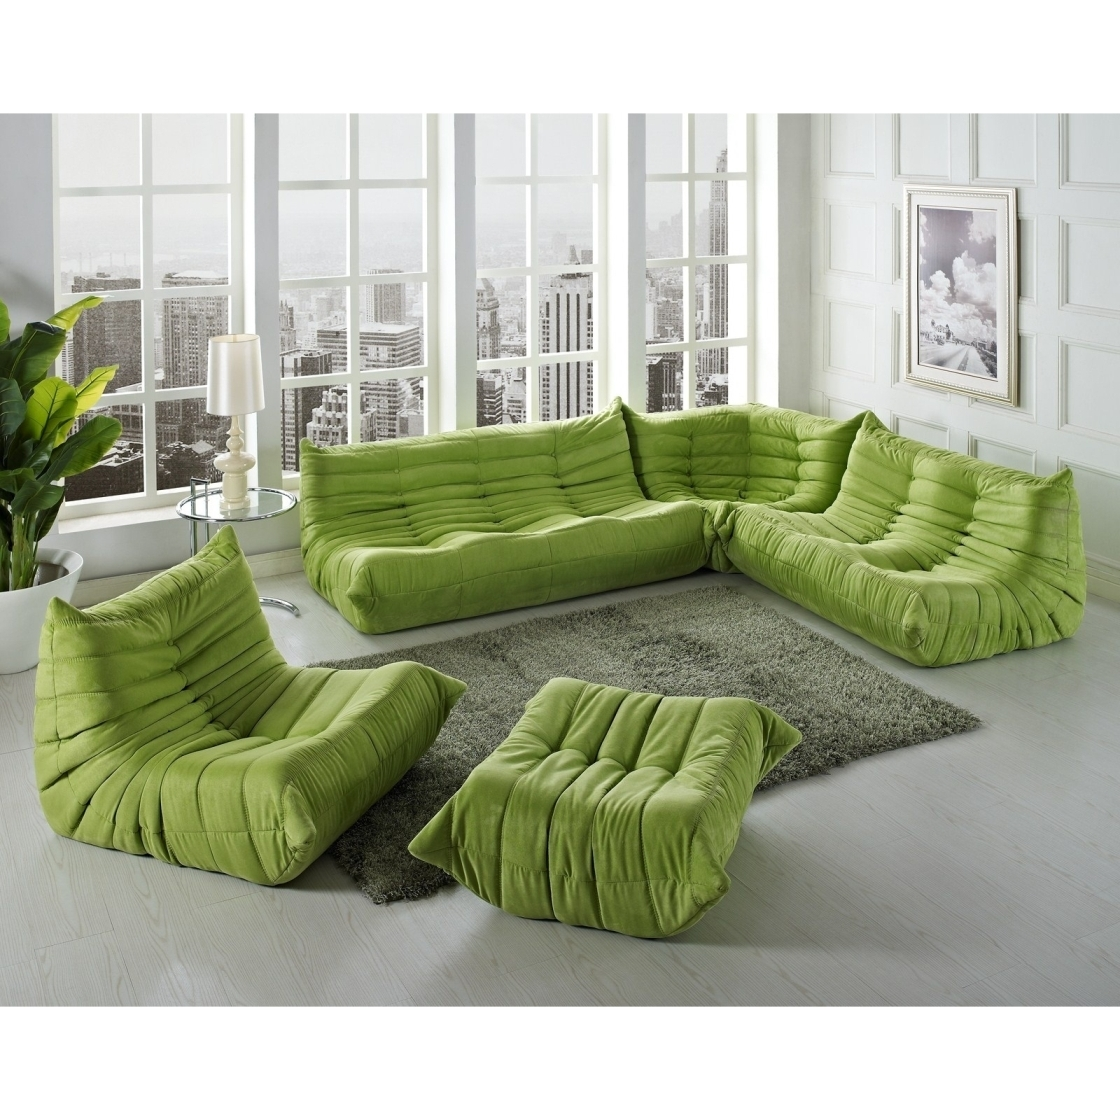 Modular Leather Sectional Sofa – Leather Sectional Sofa Intended For Leather Modular Sectional Sofas (View 17 of 20)